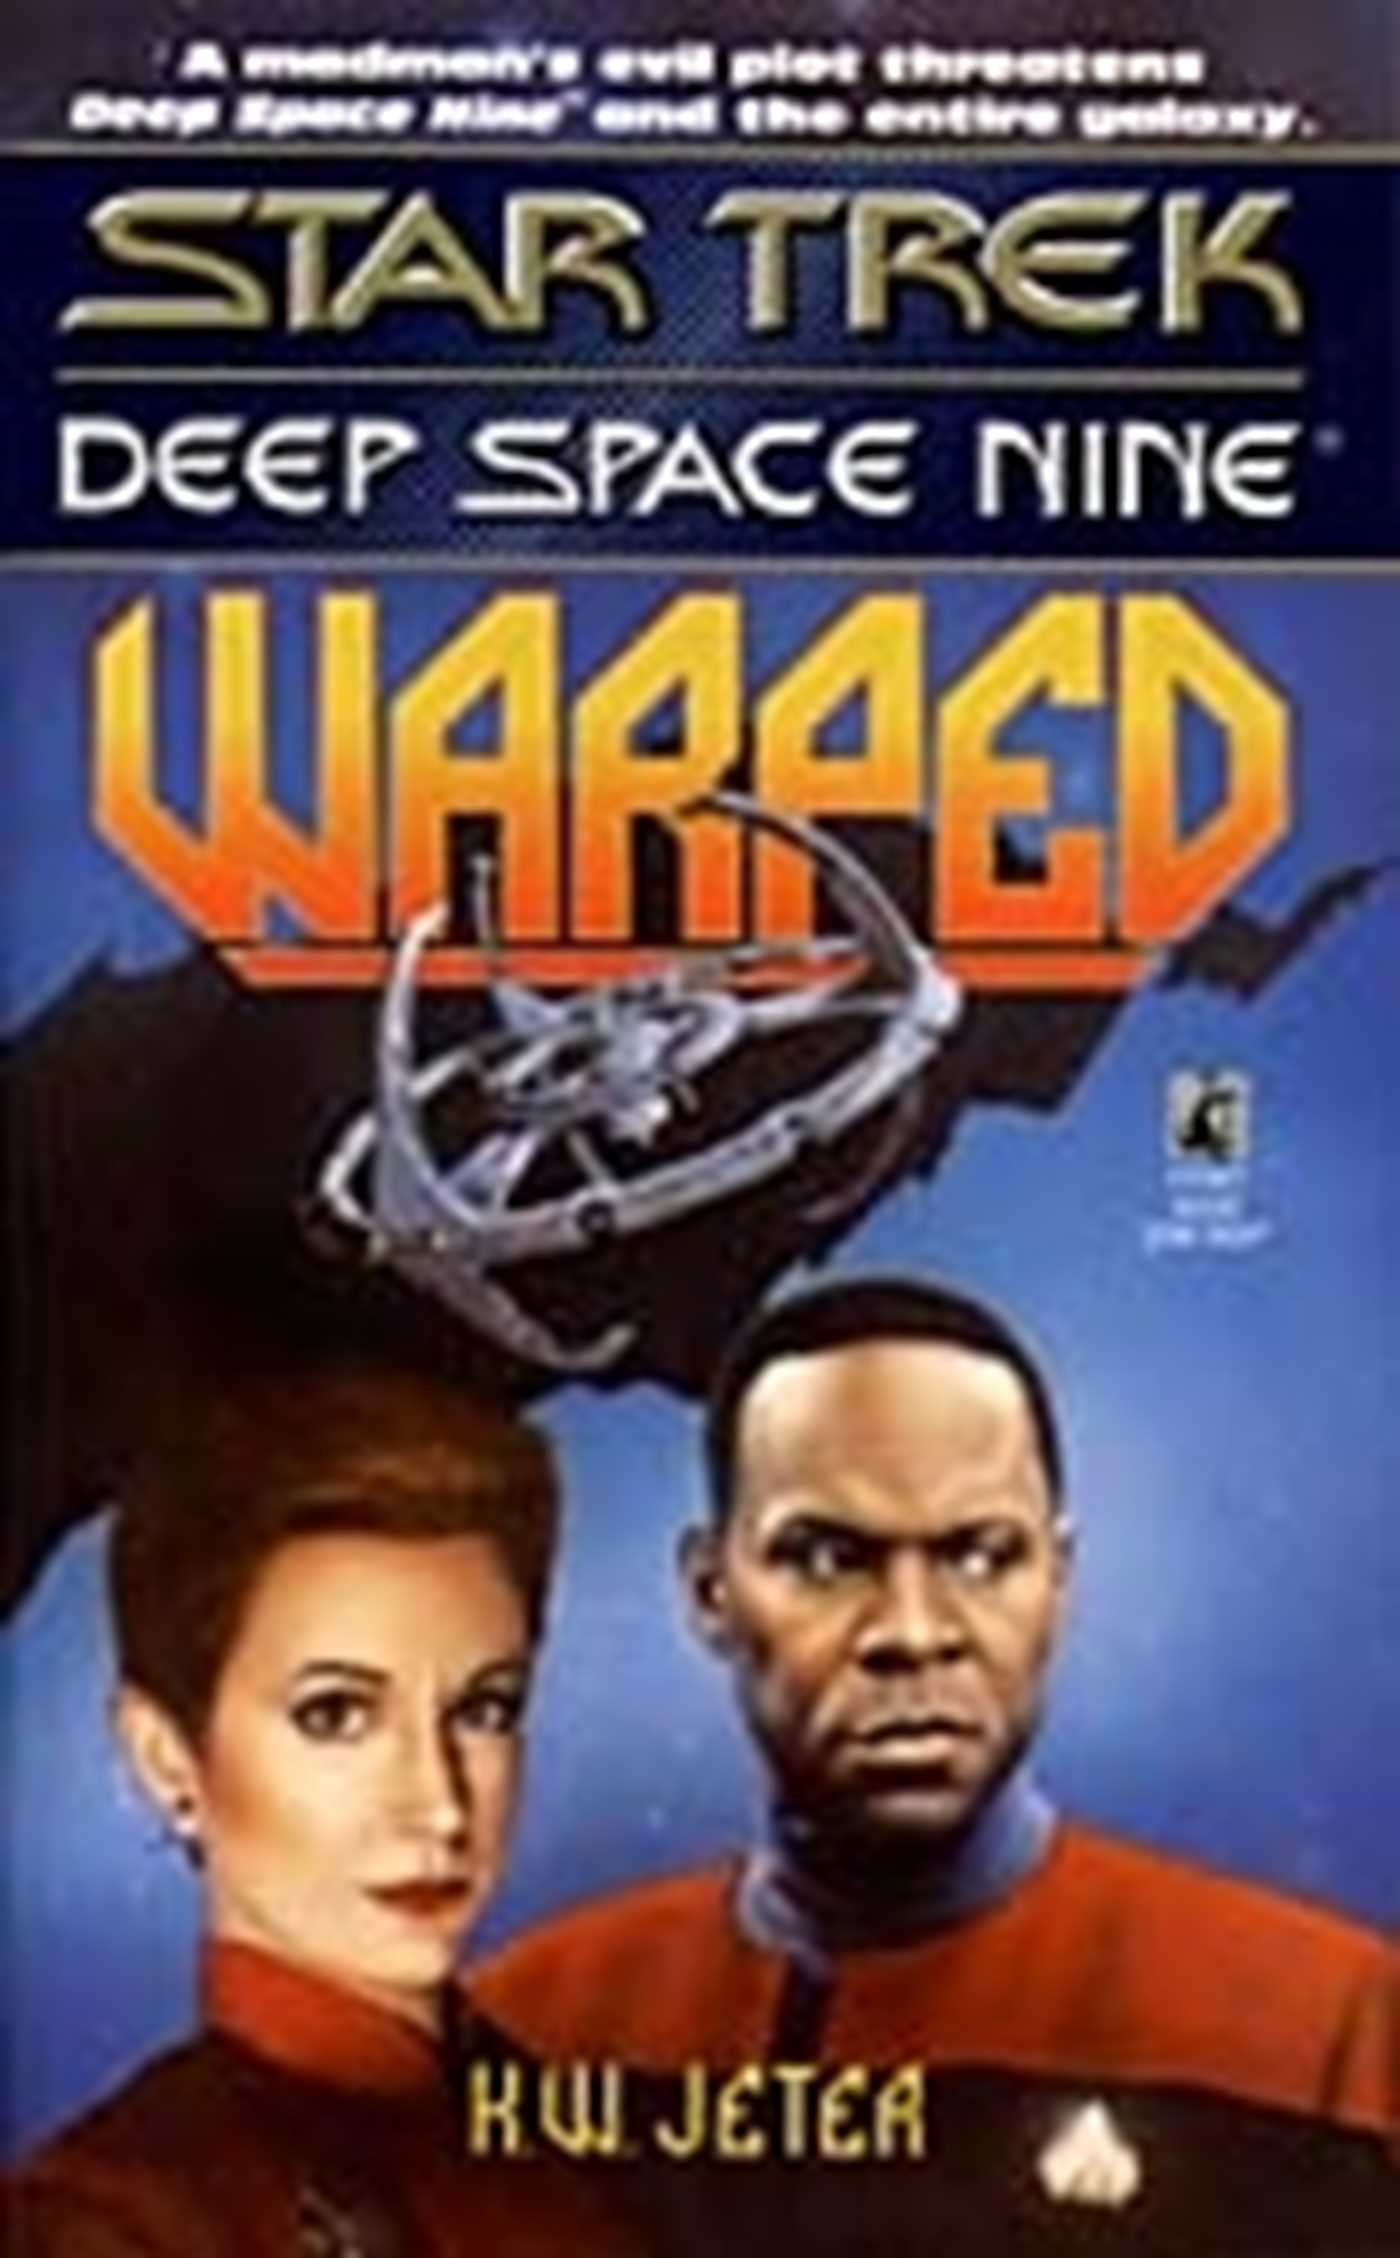 Star trek deep space nine warped 9780743420785 hr